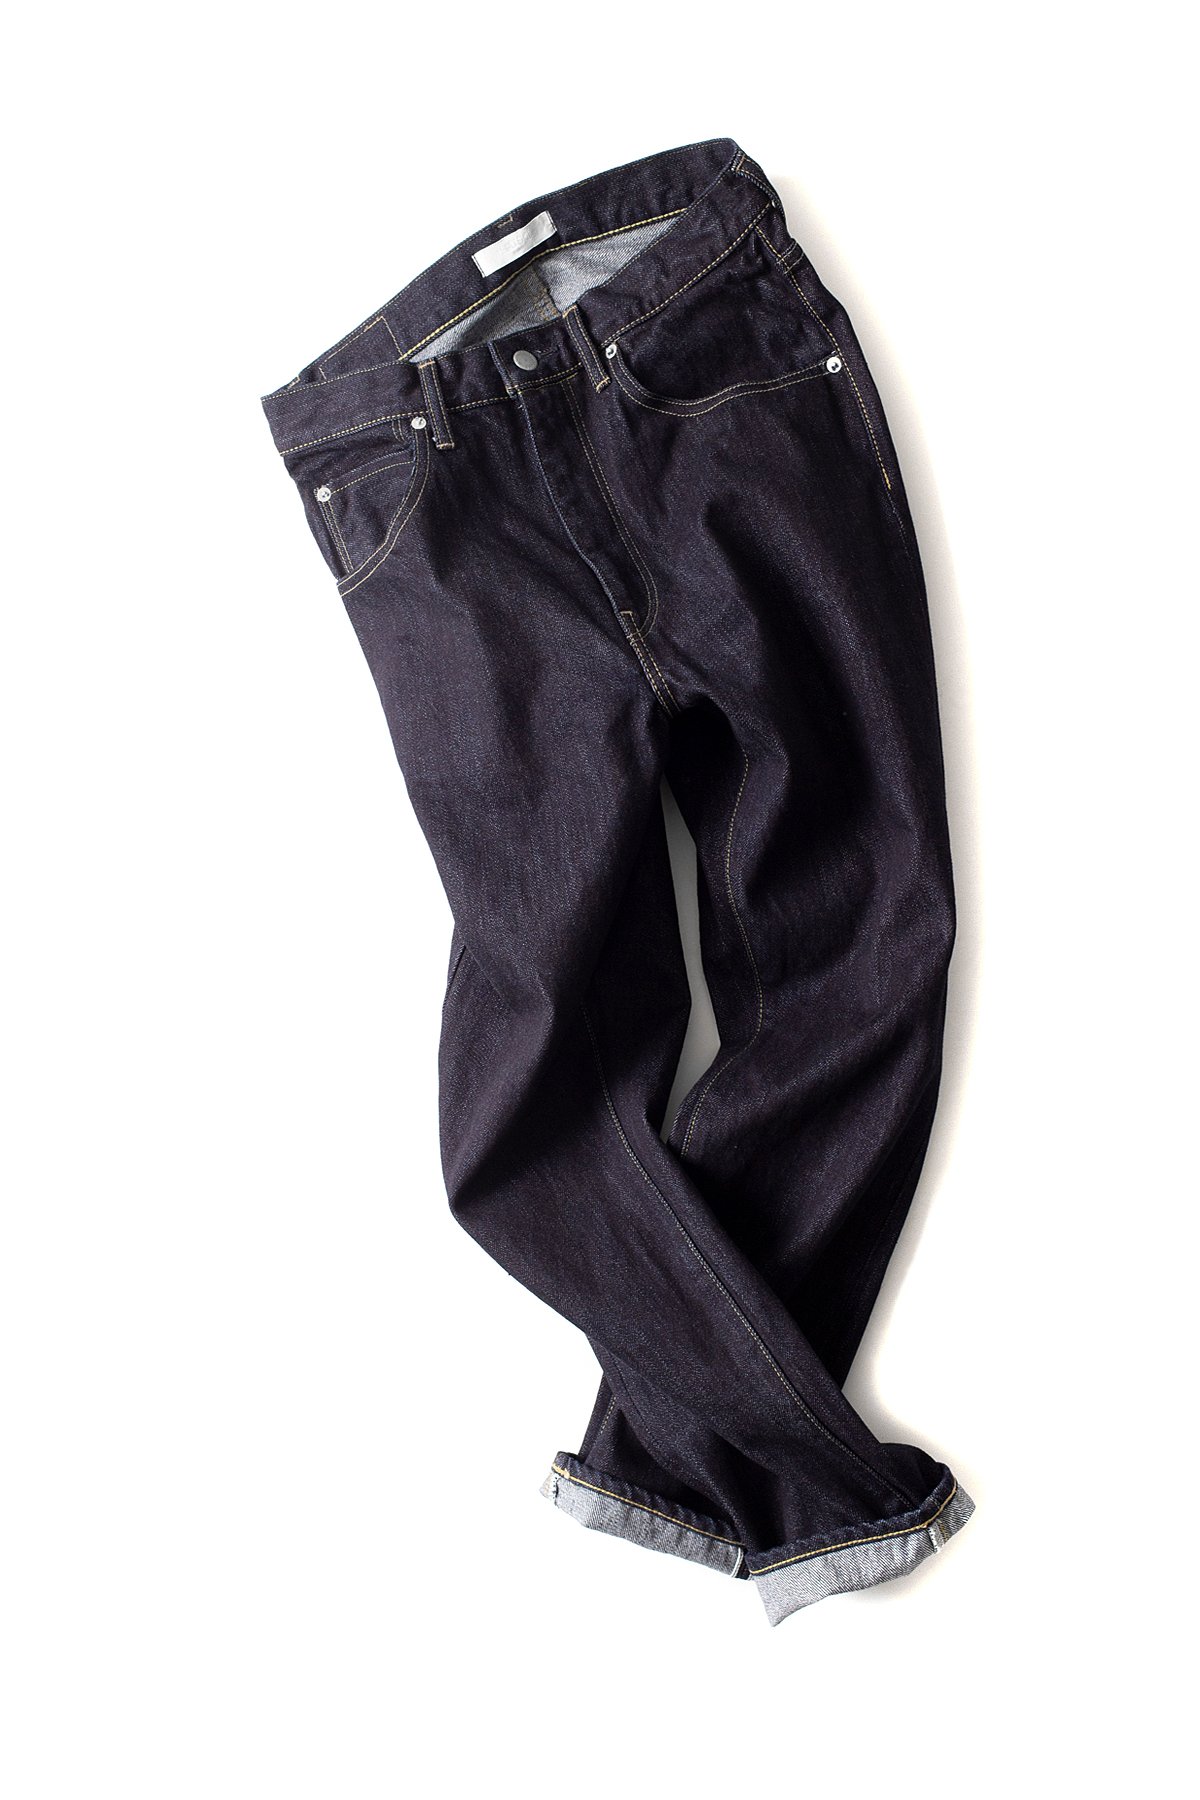 HATSKI : Regular Tapered Denim (One Wash)